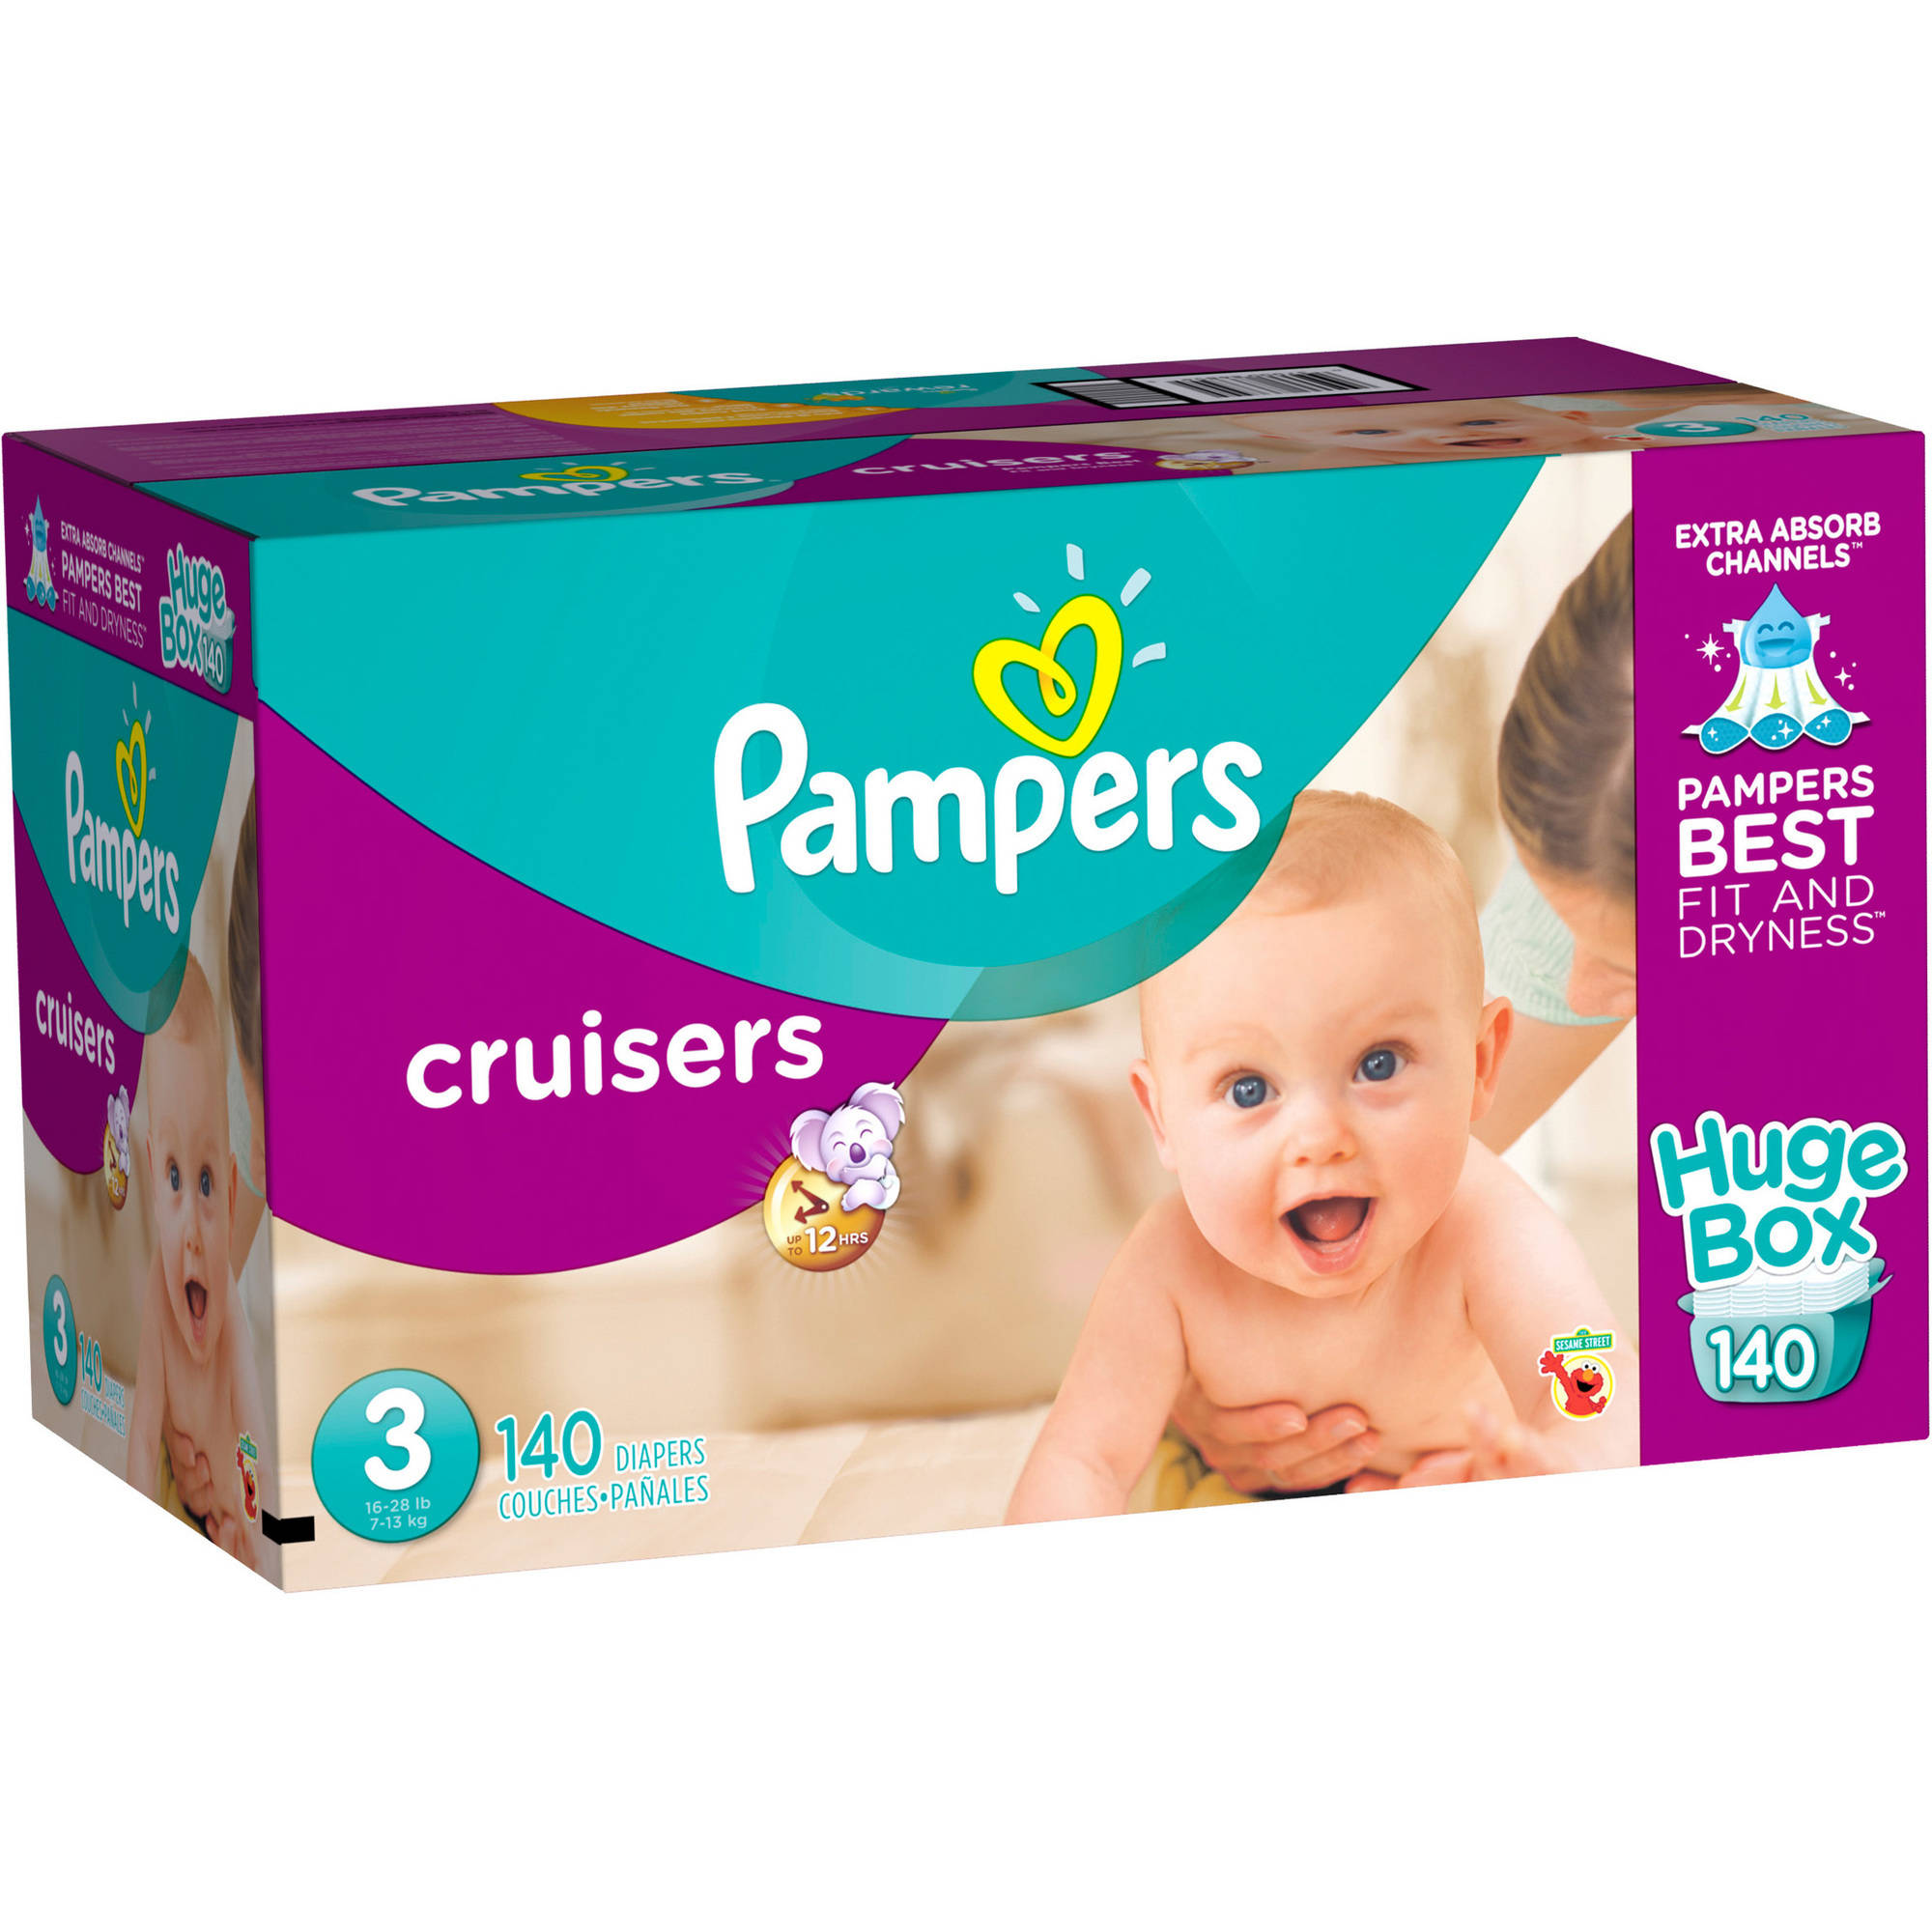 Pampers Cruisers Diapers, Huge Box (Choose your Size)